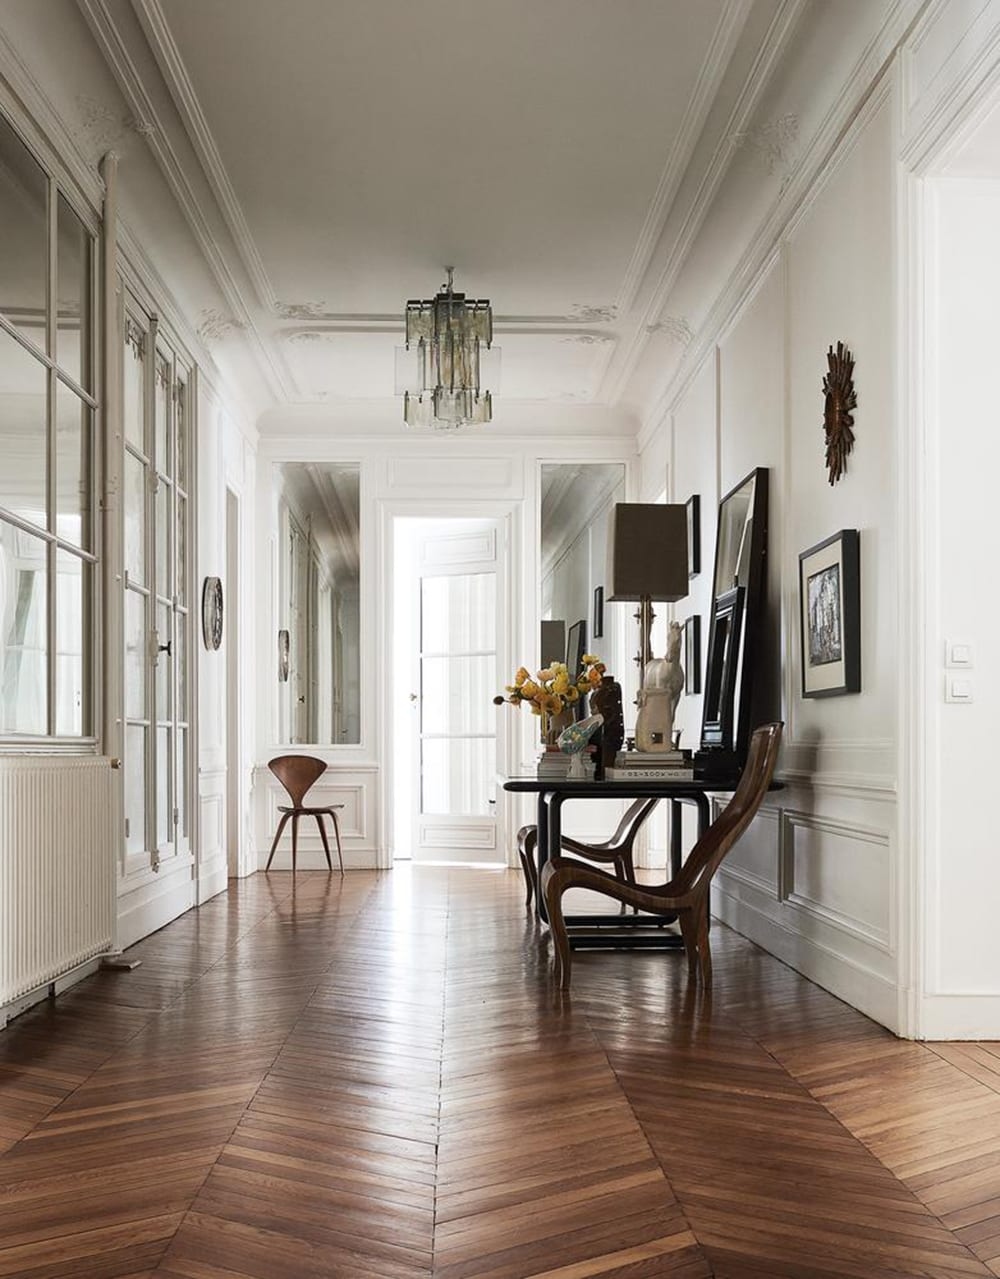 Clare waight keller 39 s paris apartment style minimalism for Apartment inside